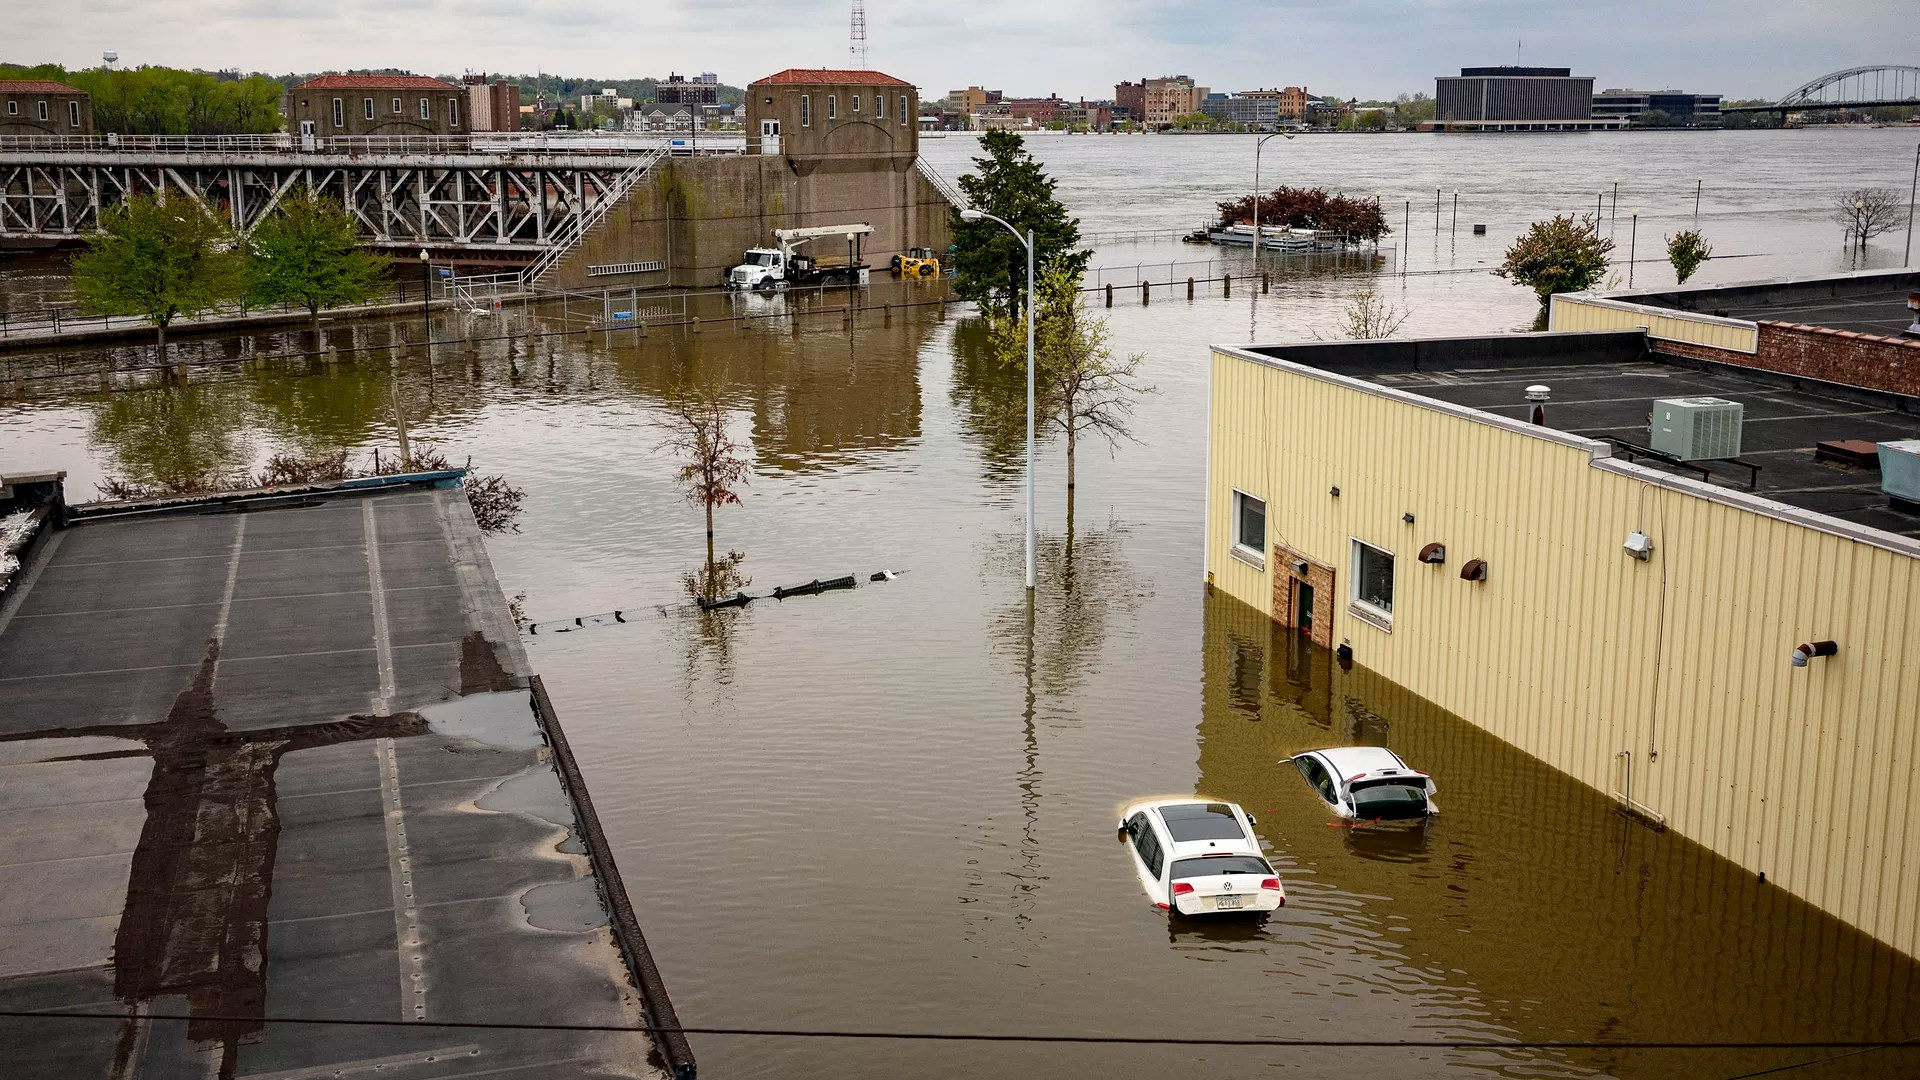 In this image, two cars float in the flood water between two buildings. This picture is a birds eye view of flood waters in a city.